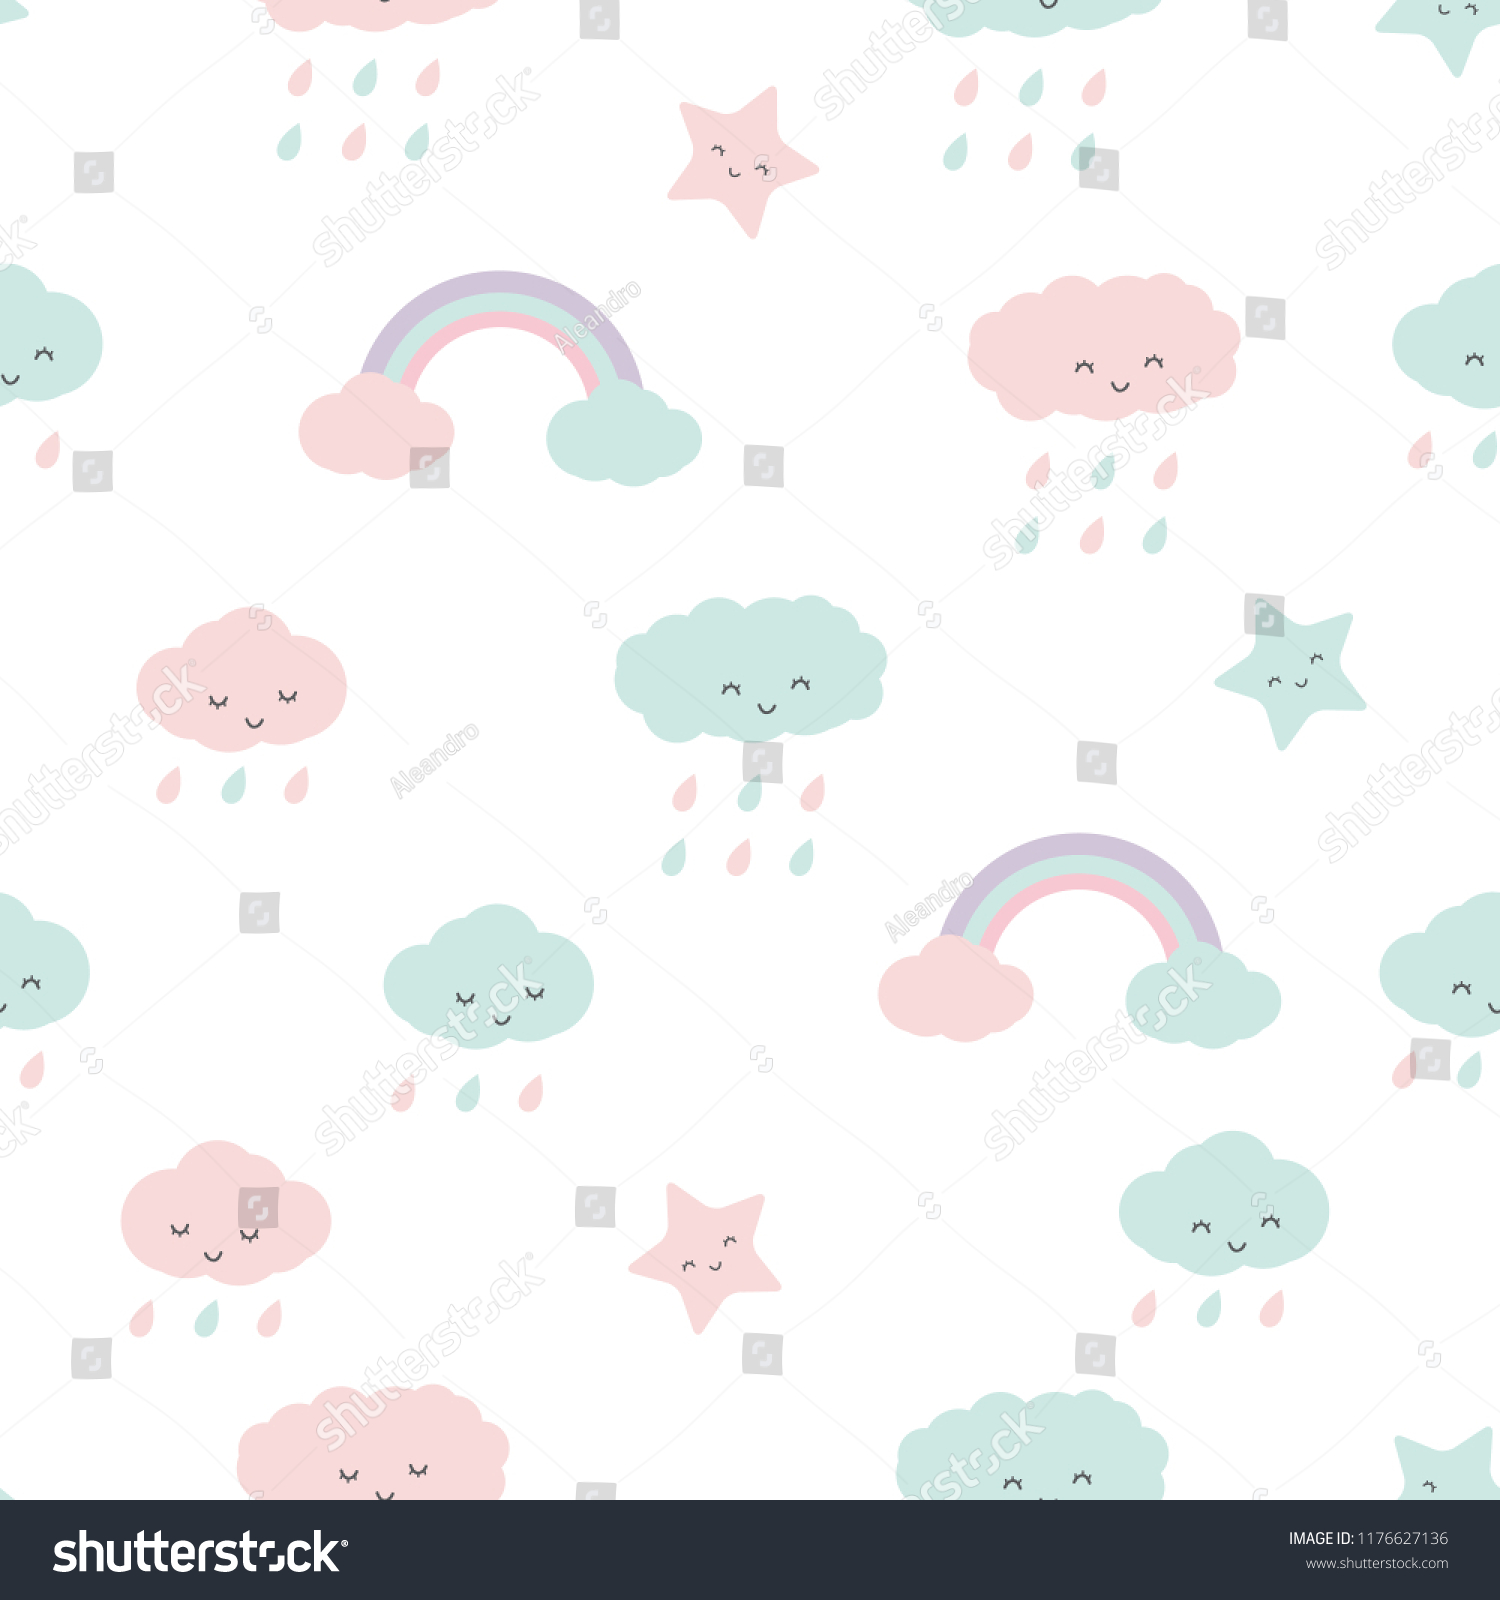 f11fafccebe Cute adorable cloud and rainbow pastel color cartoon doodle seamless  pattern background wallpaper vector eps10.